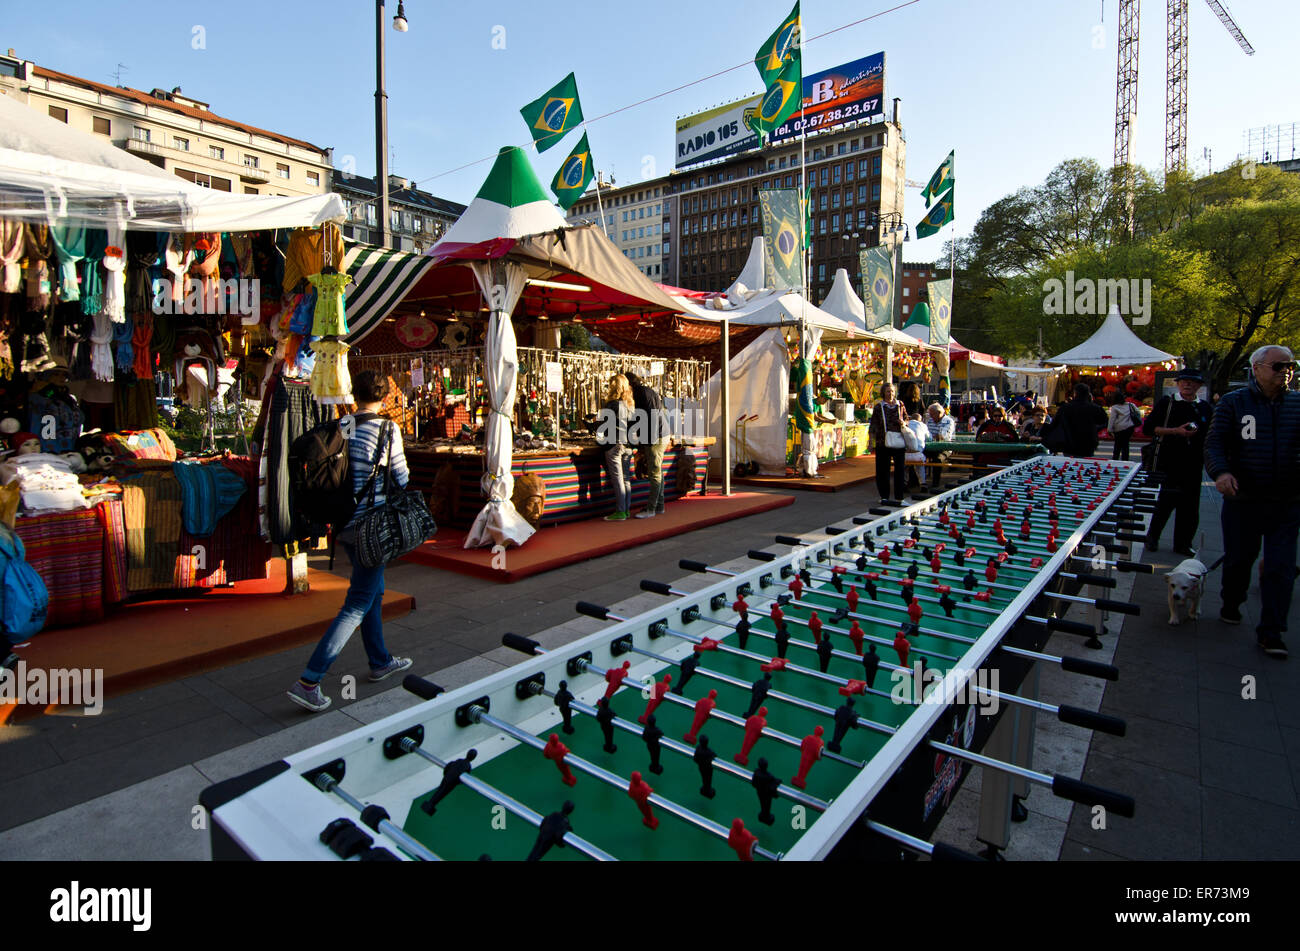 Giant Fussball game table at market in front of Milano railroad station, Italy - Stock Image